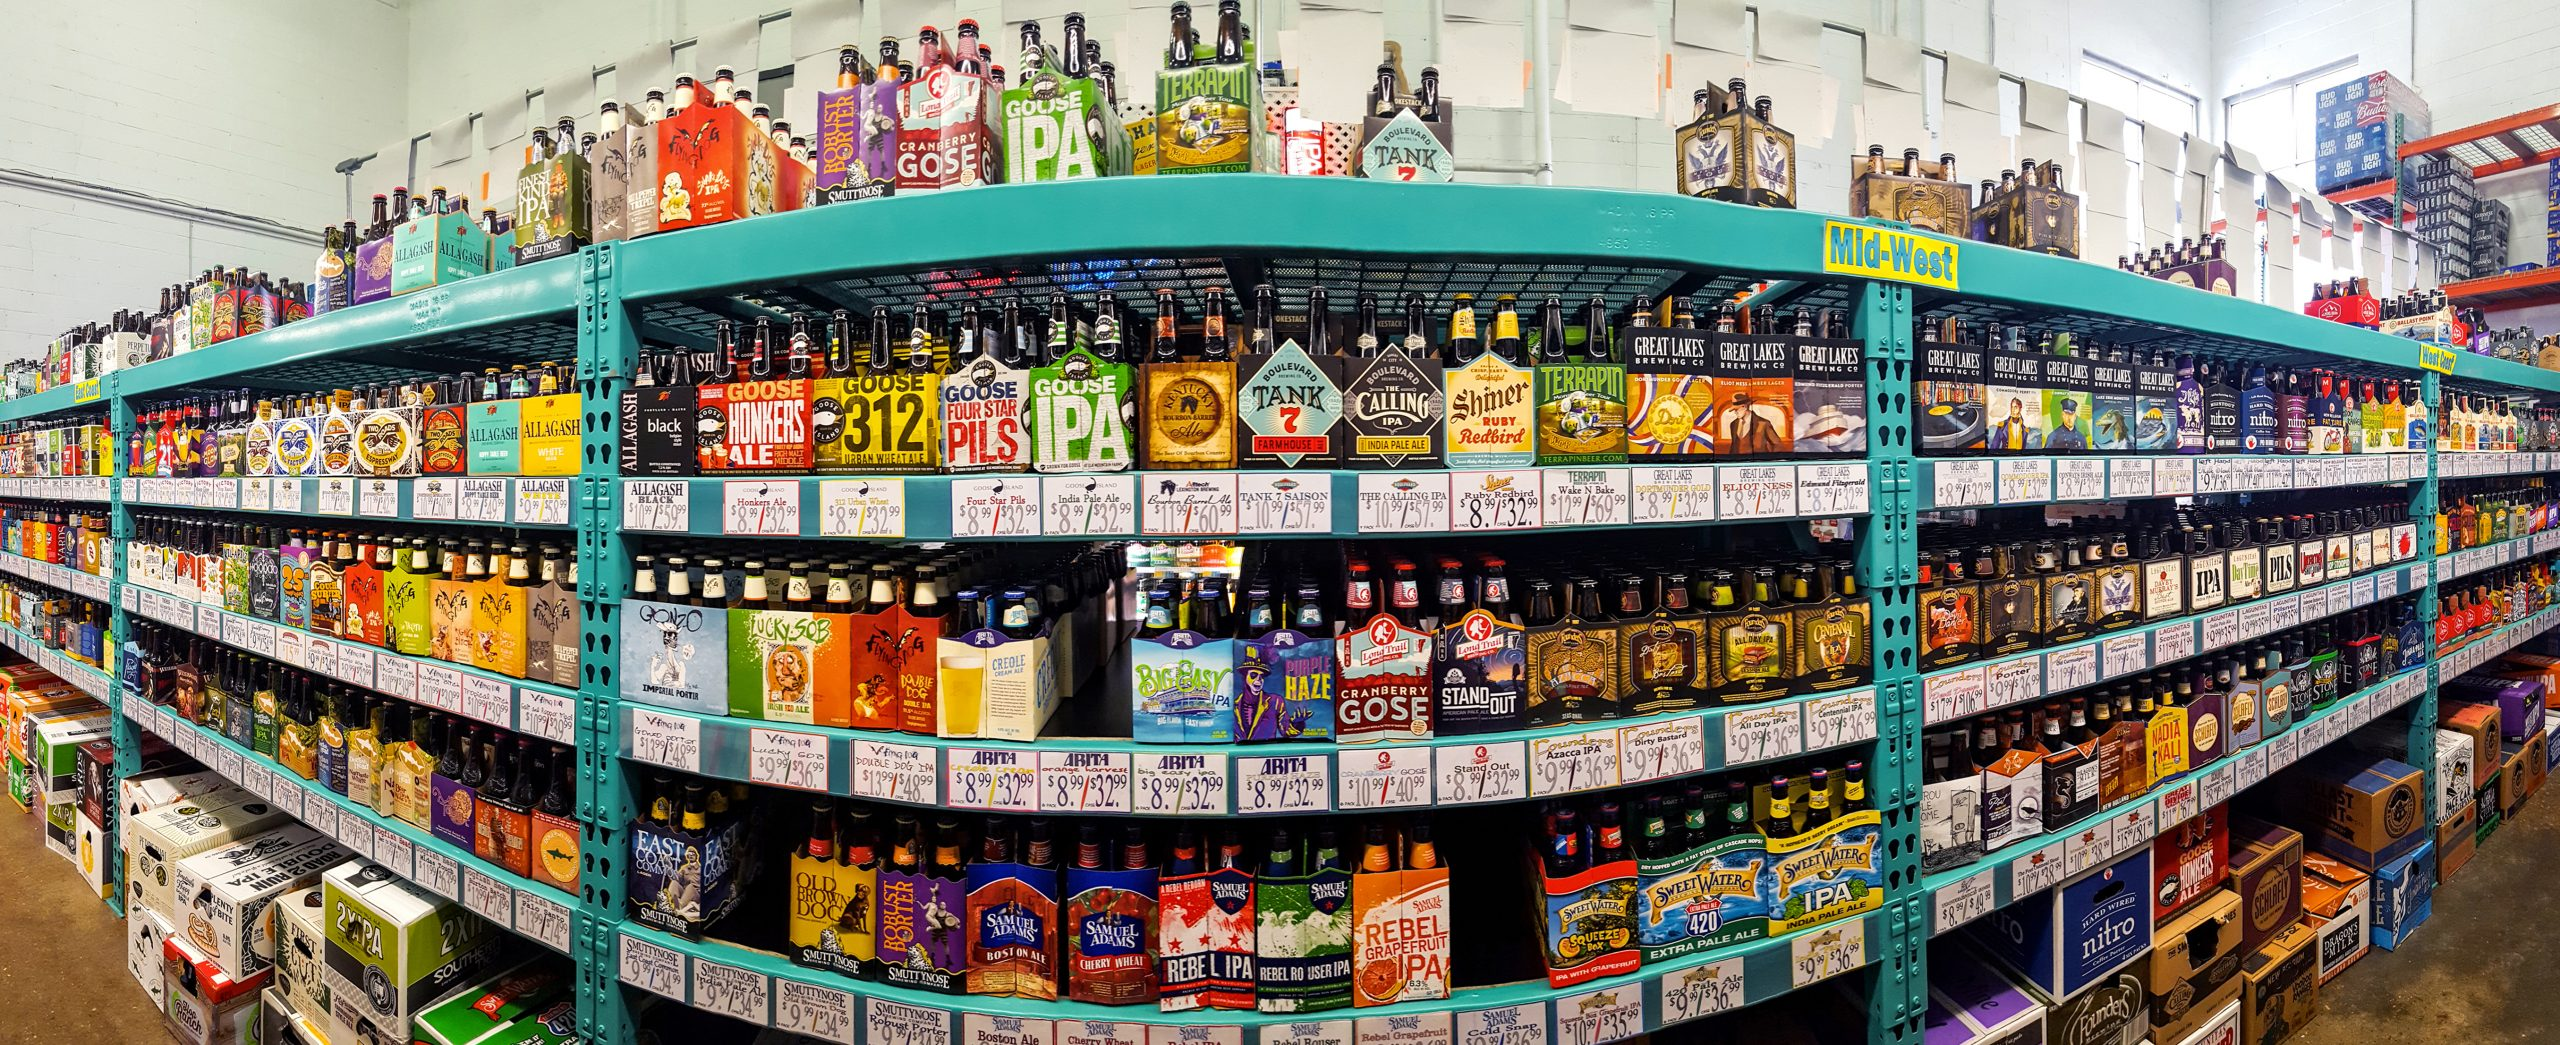 craft beer isle in liquor store